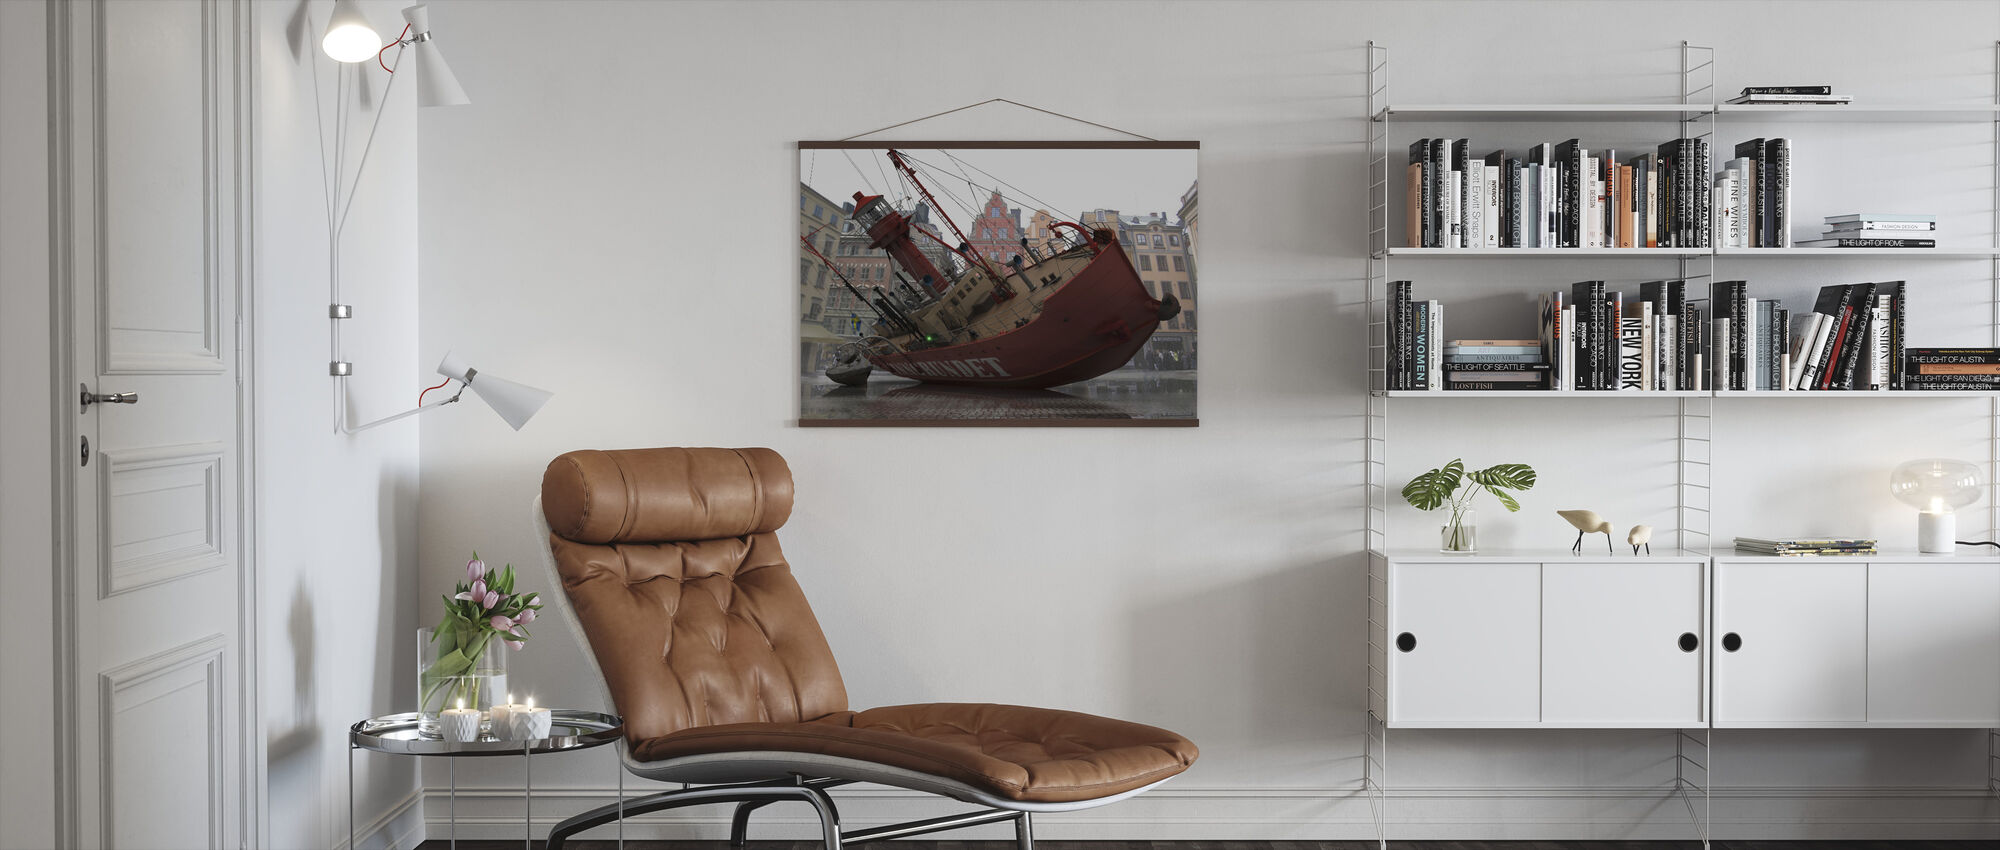 Boat in Old Town - Poster - Living Room